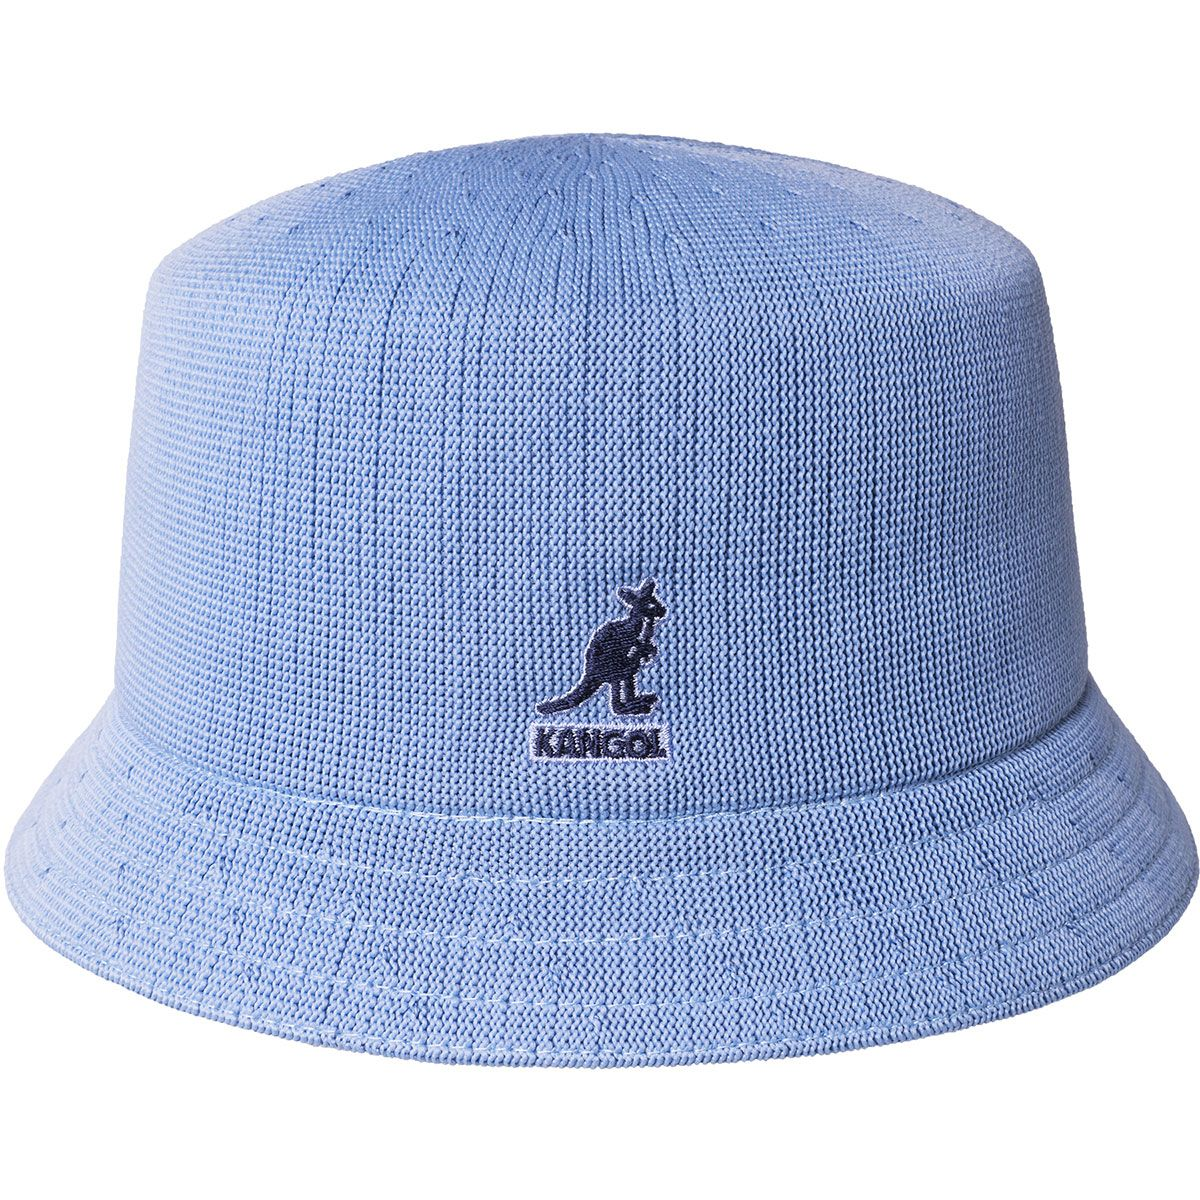 65d5c29c5f6c0 ... Tropic Bin Bucket by Kangol. 🔍. prev